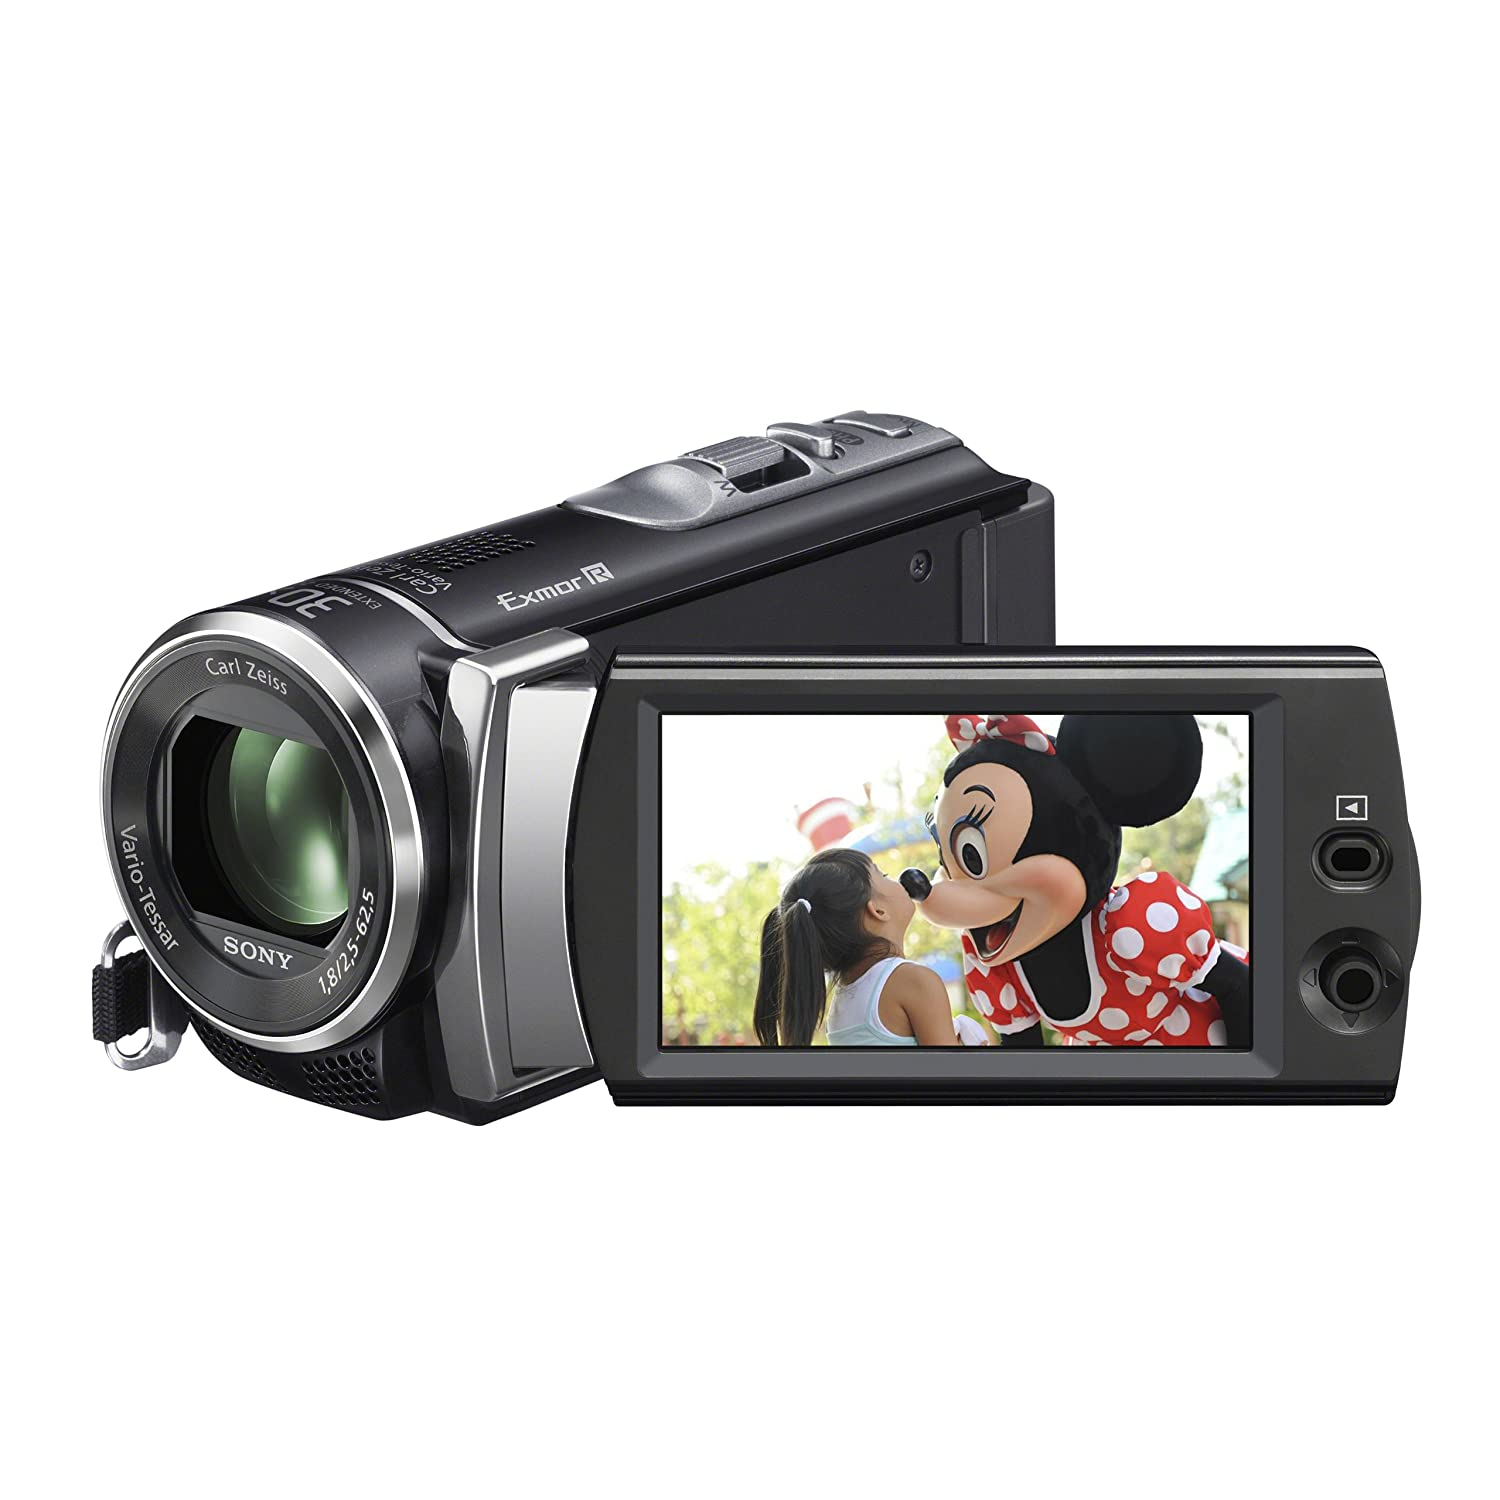 Sony HDR-CX190 High Definition Handycam 5.3 MP Camcorder with 25